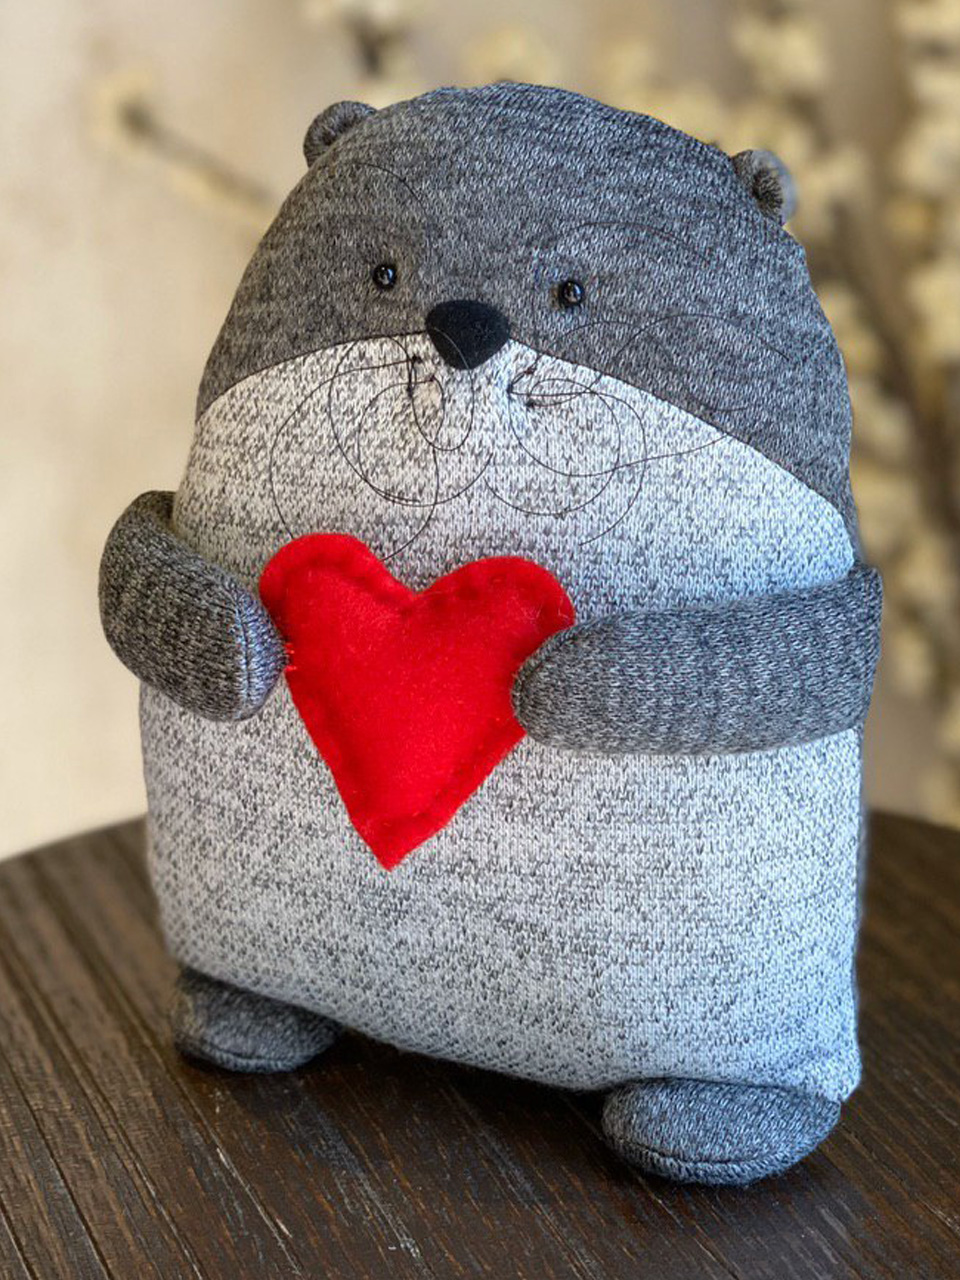 Beaver with heart